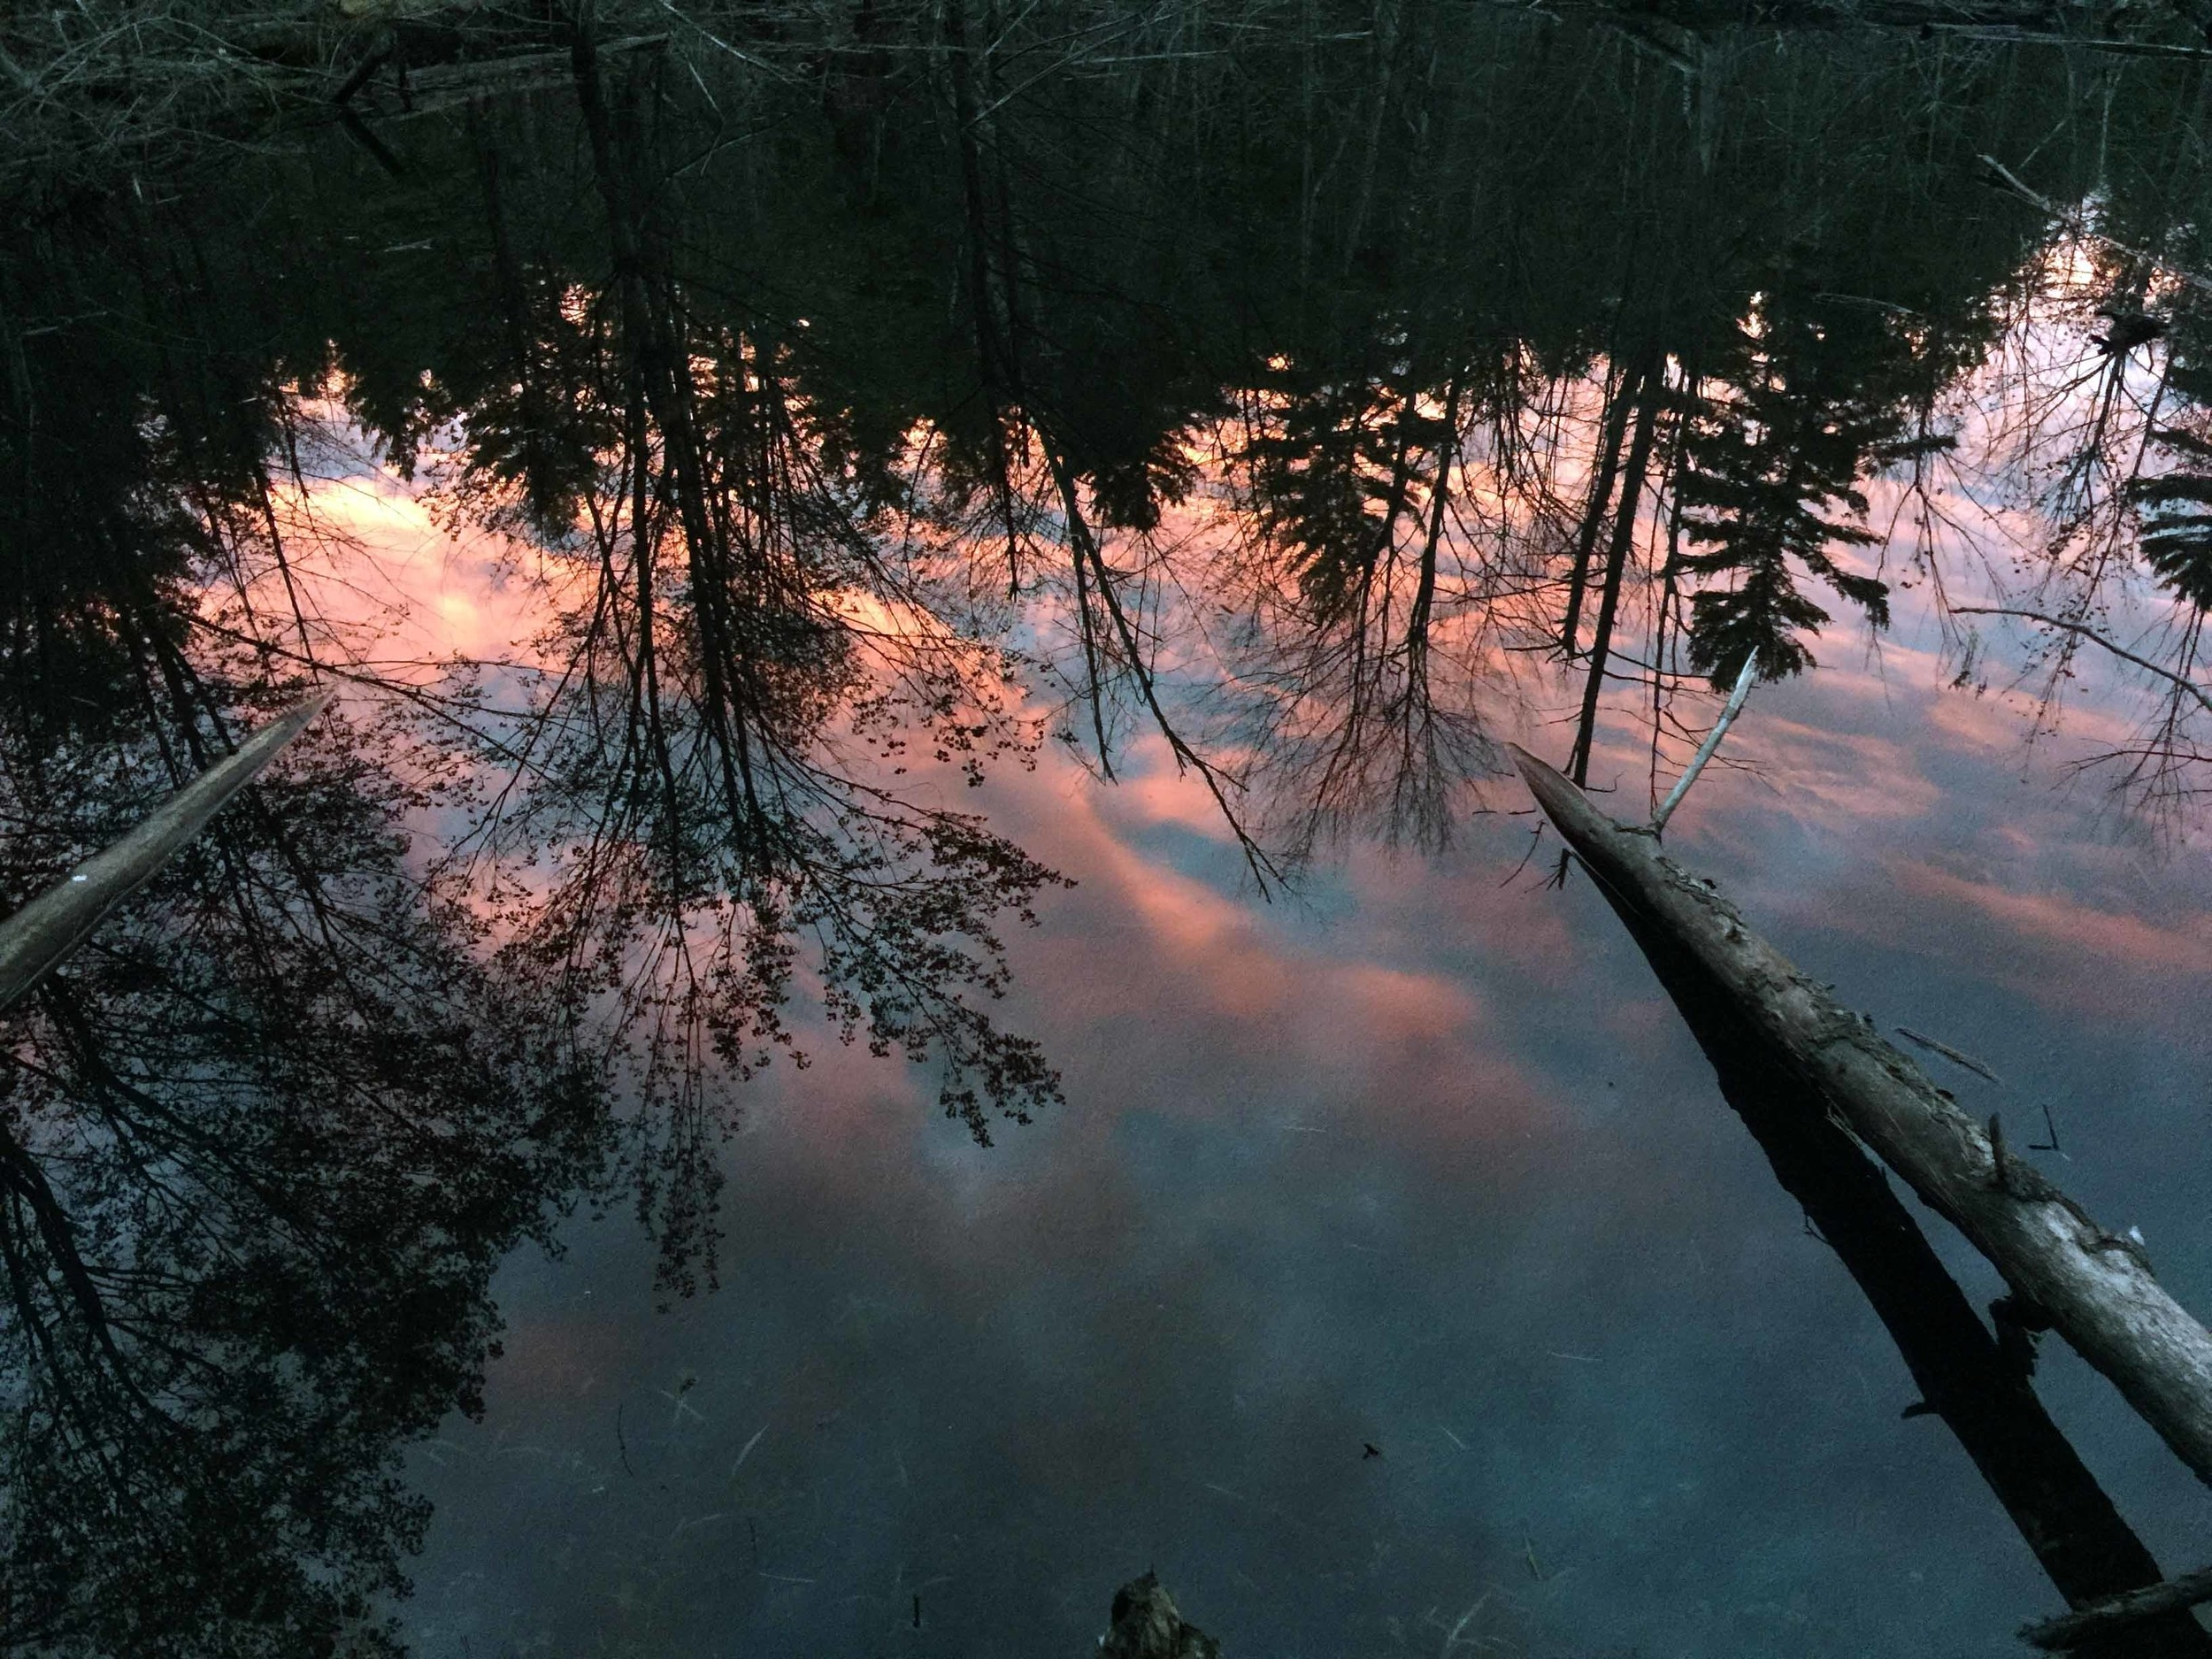 Sunset reflection off water